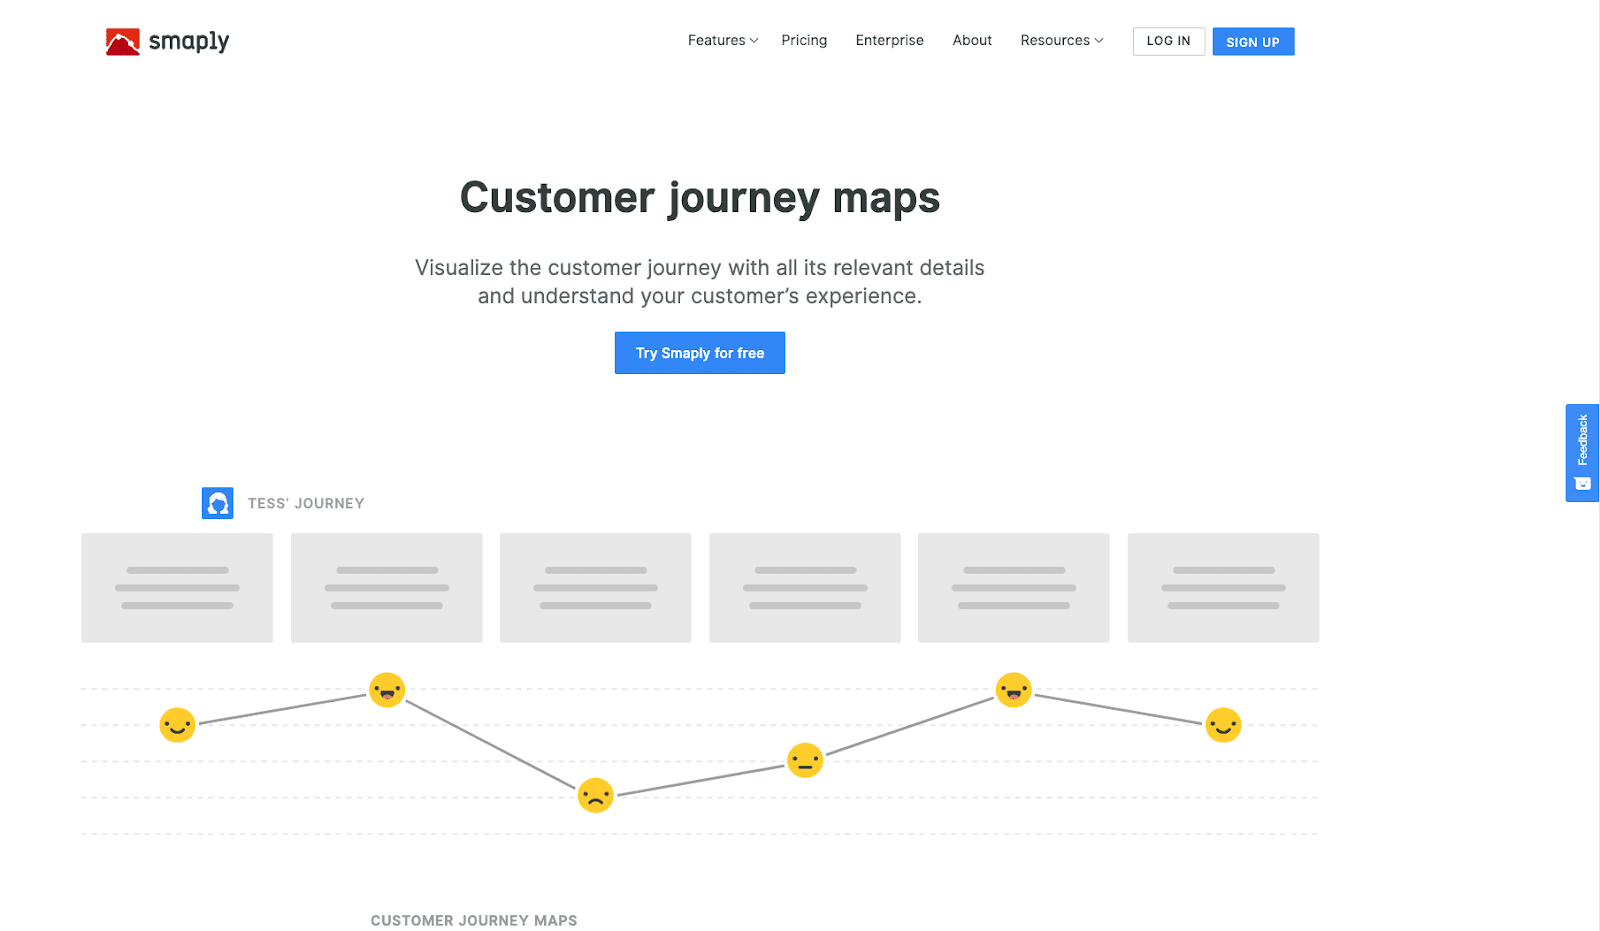 Dedicated Customer Journey Mapping Tools: Smaply